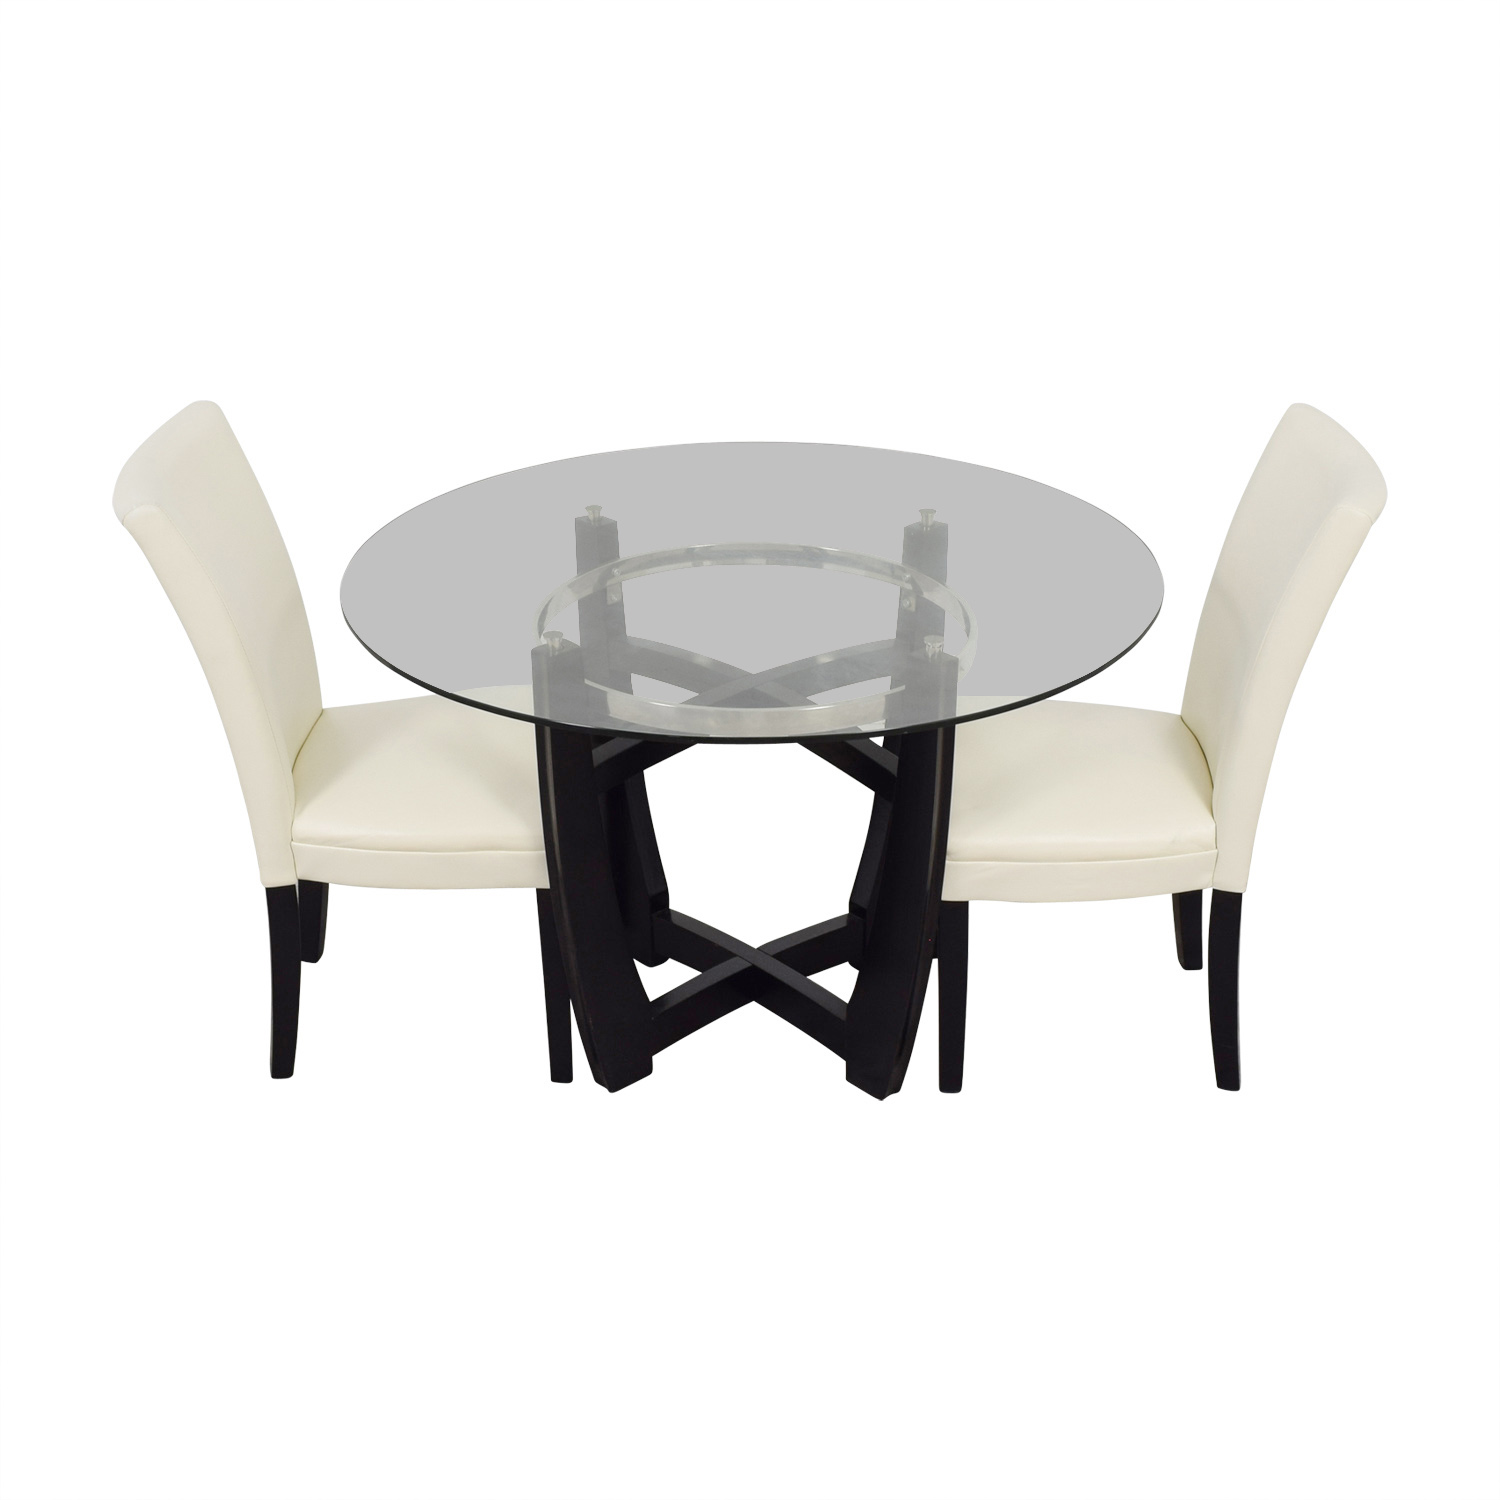 buy Bob's Furniture Bob Furniture Round Glass Table and White Chairs online